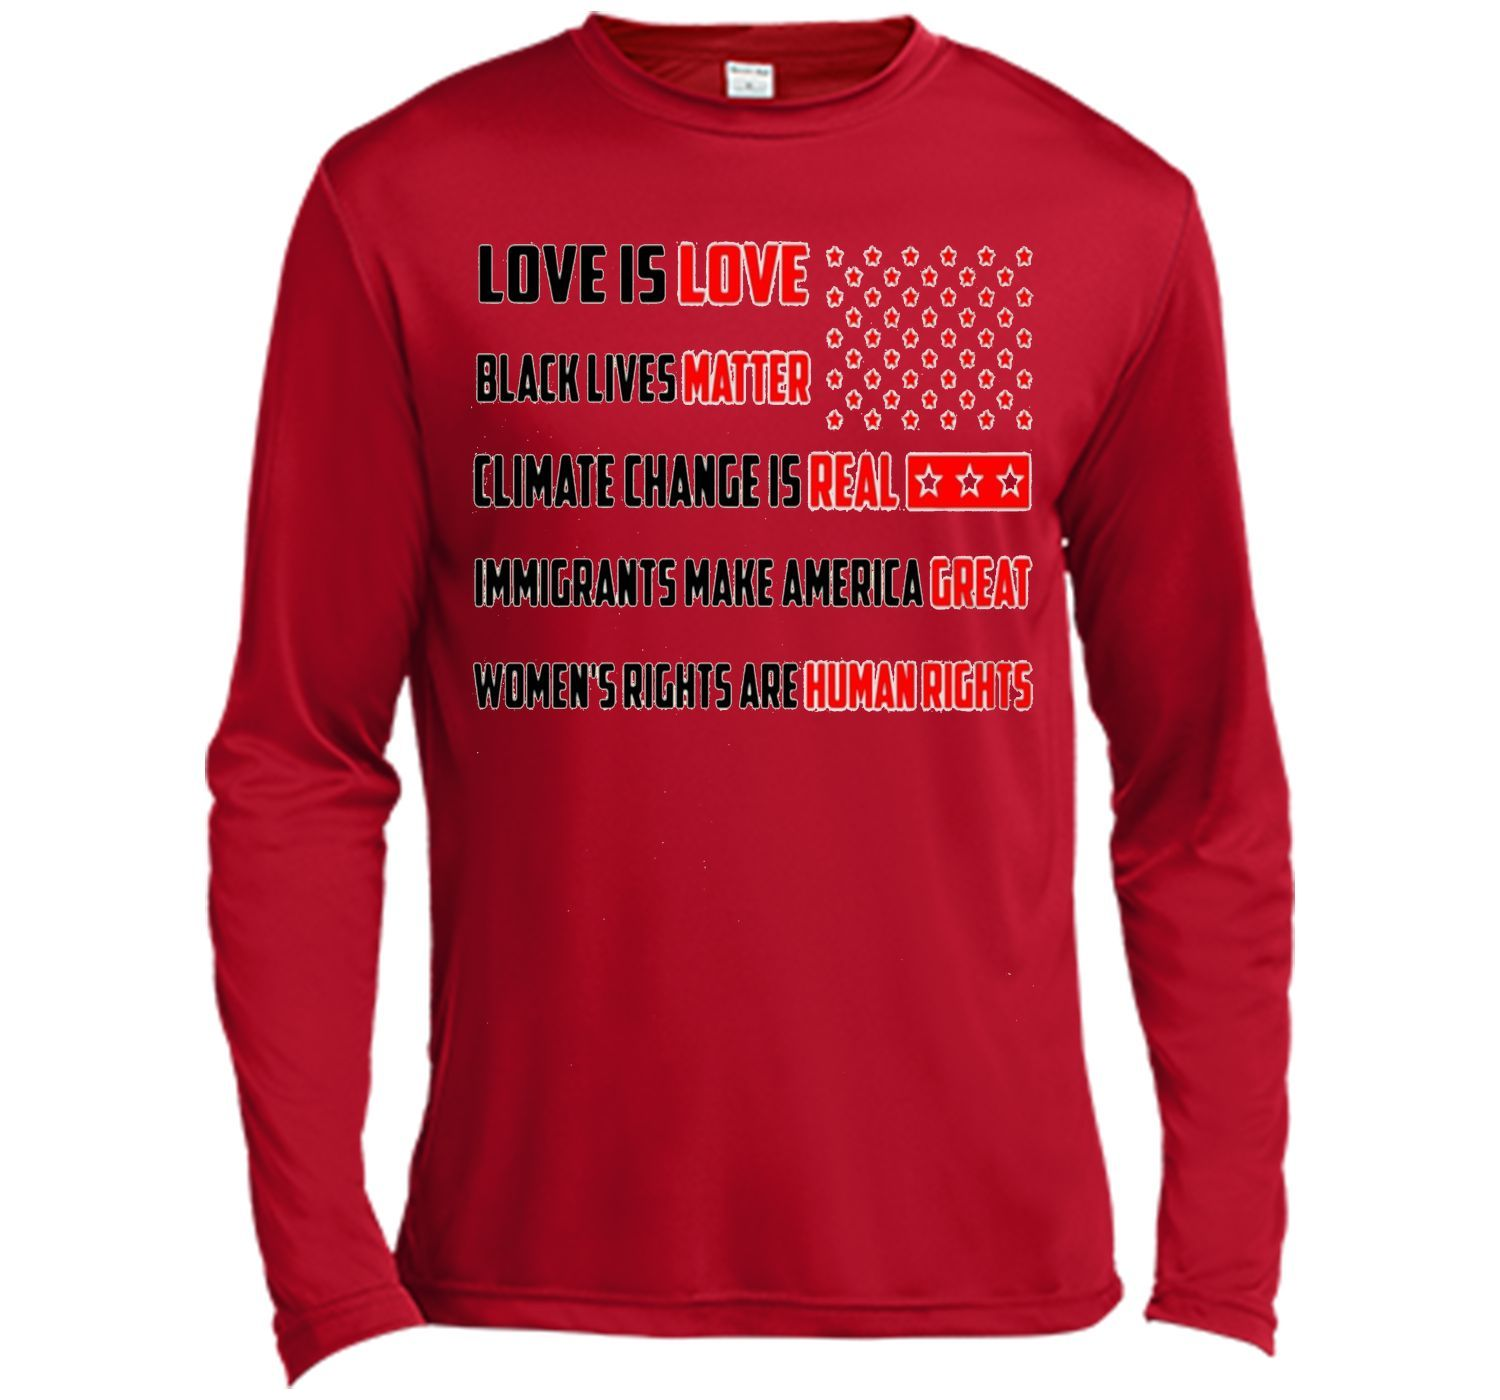 Love is love T-Shirt Women's rights are human rights Shirt